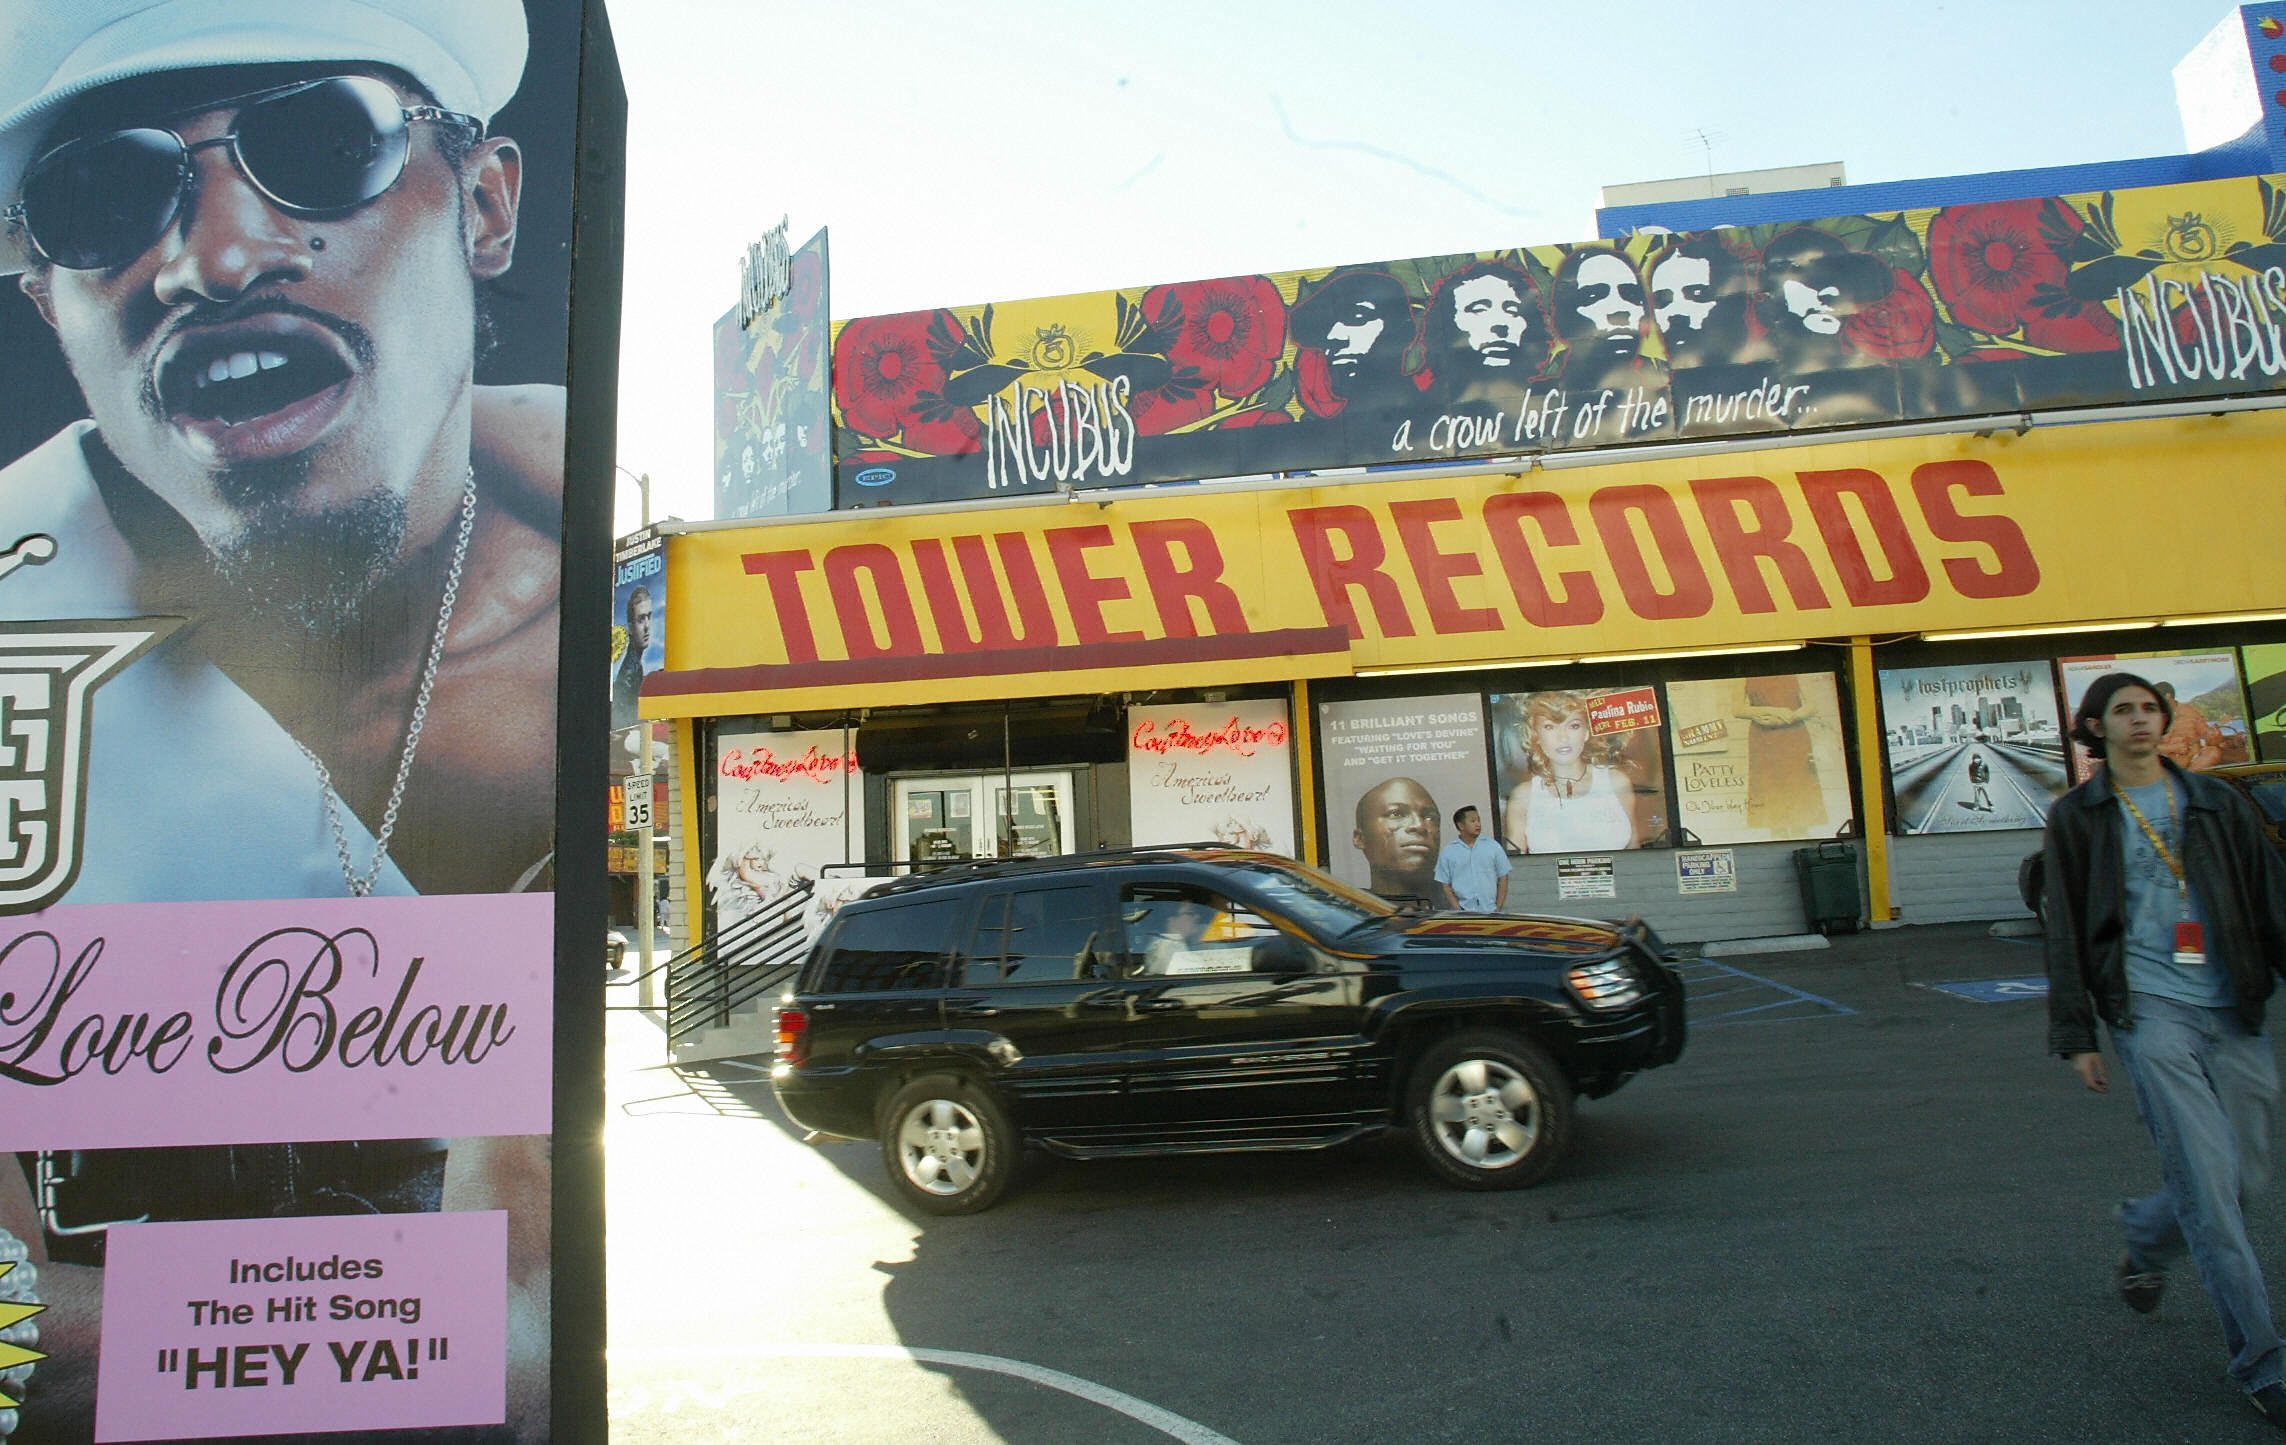 Tower Records store